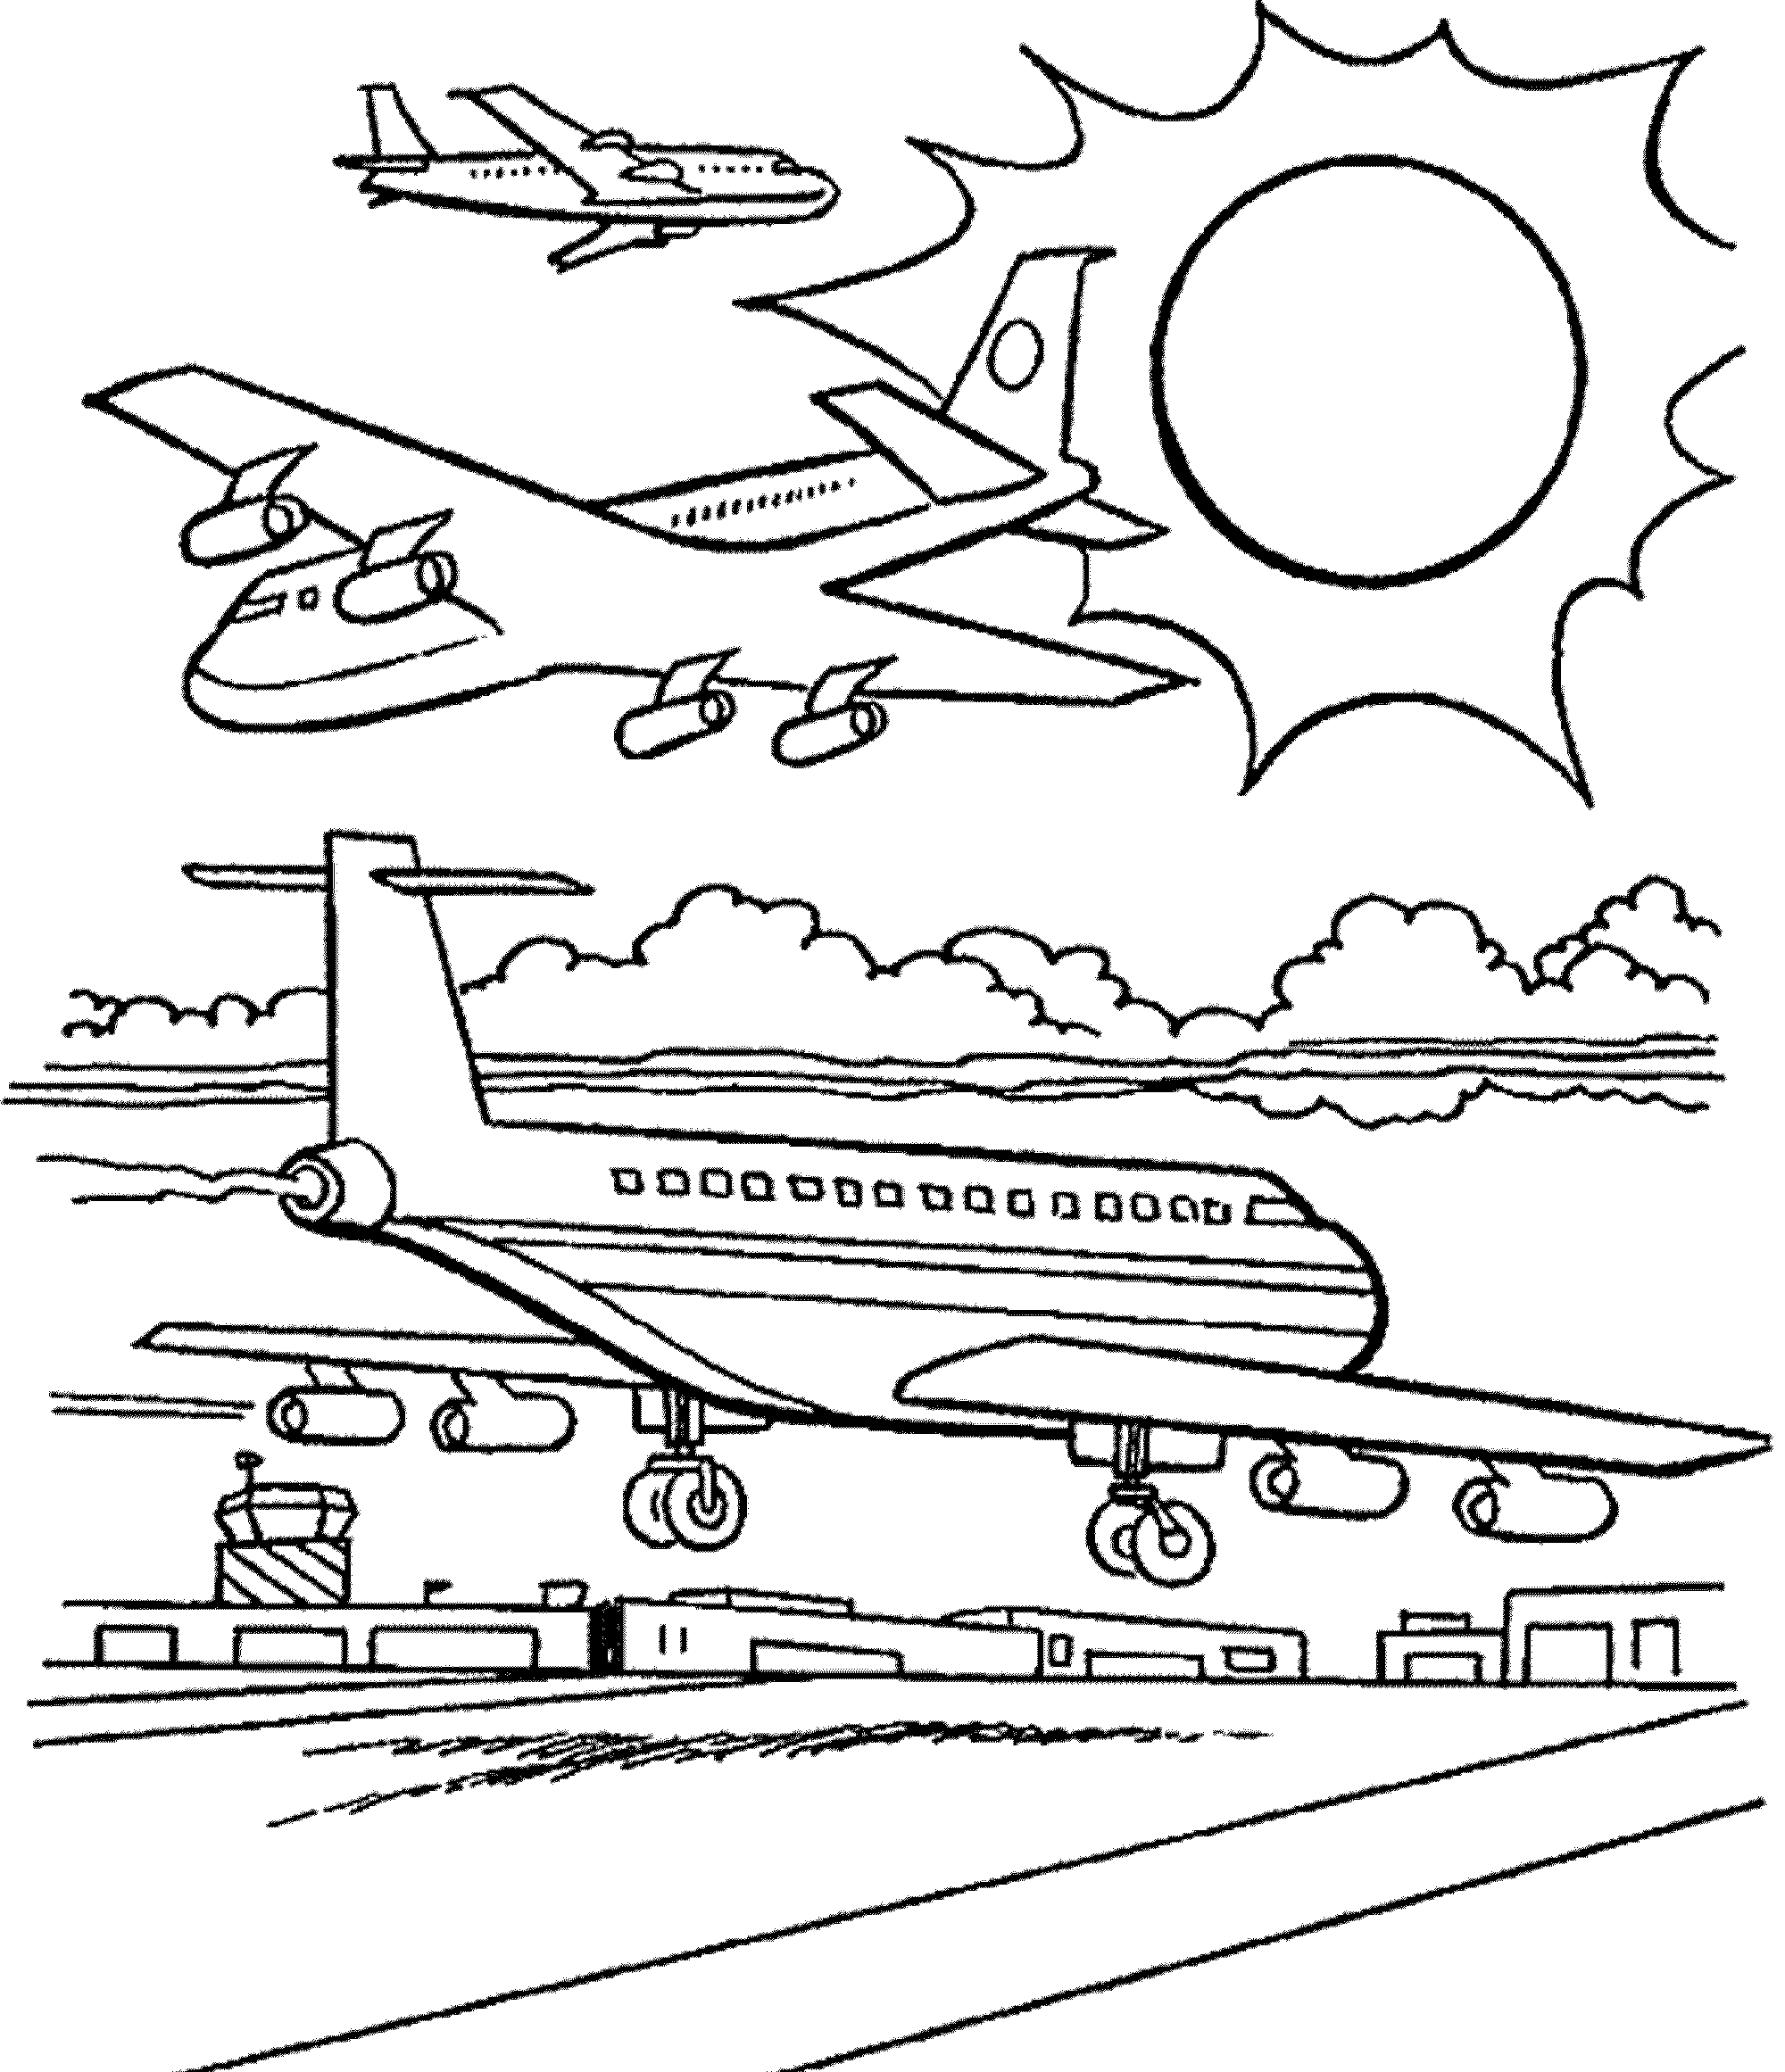 Airplane coloring pages for adults